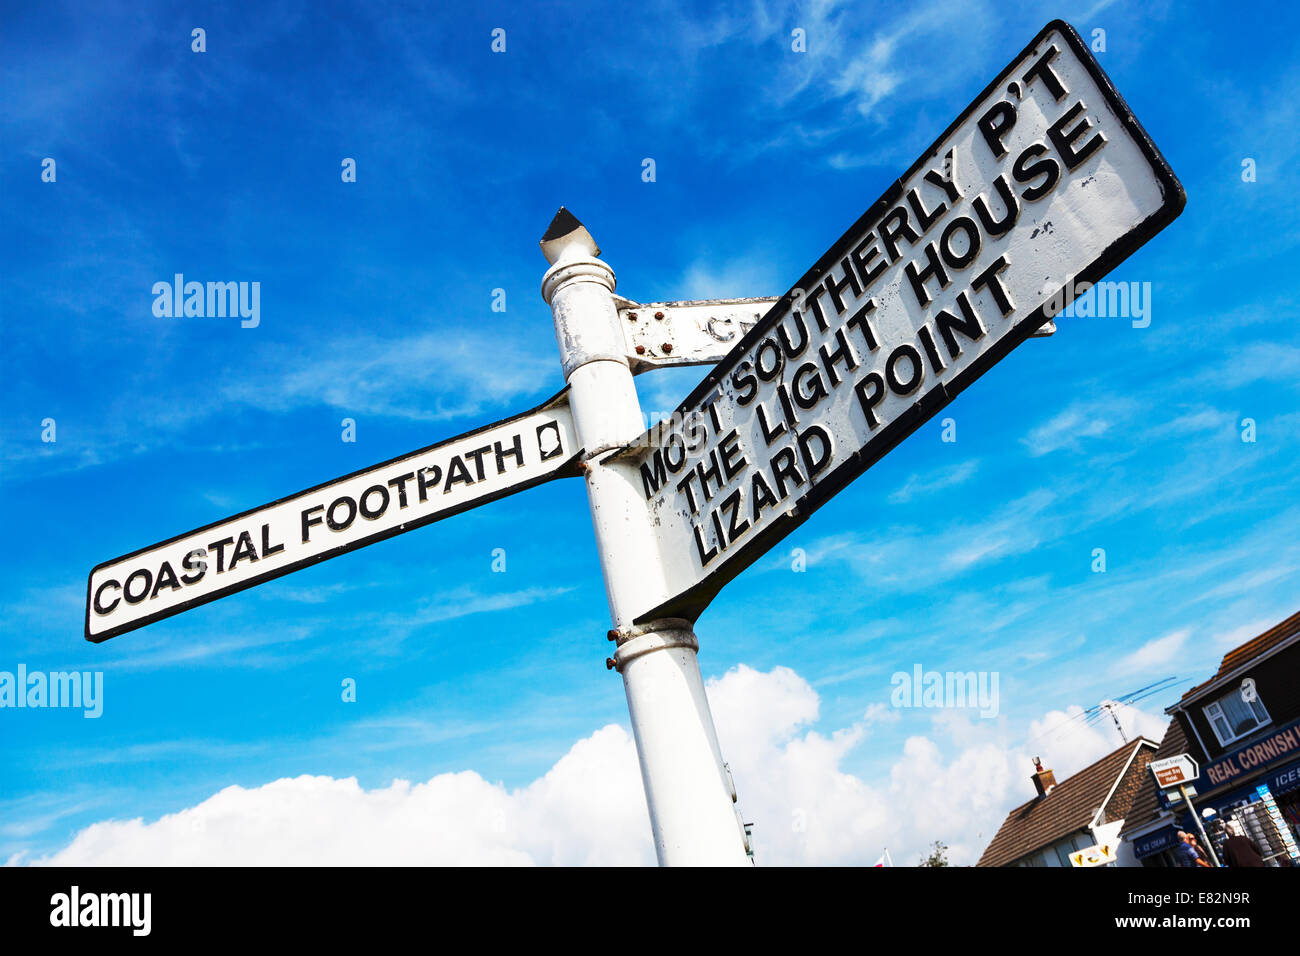 Lizard point road sign uk most southerly point Cornwall Cornish west country coastal footpath - Stock Image